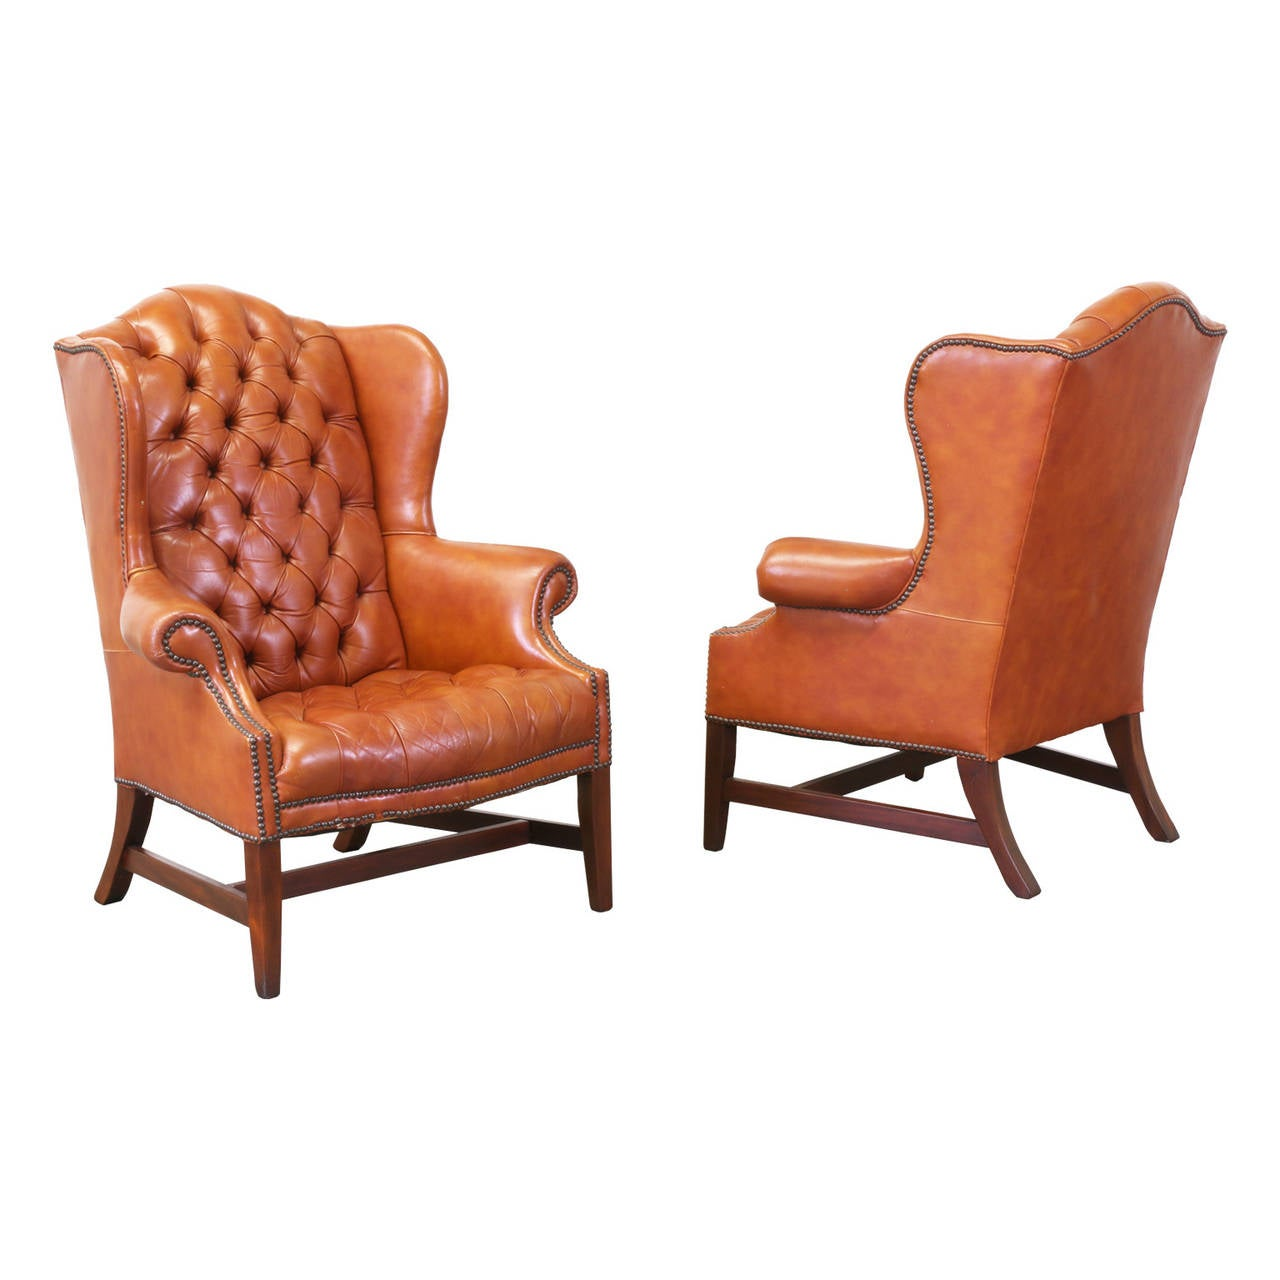 brass tacked tufted leather high back wing chairs 2